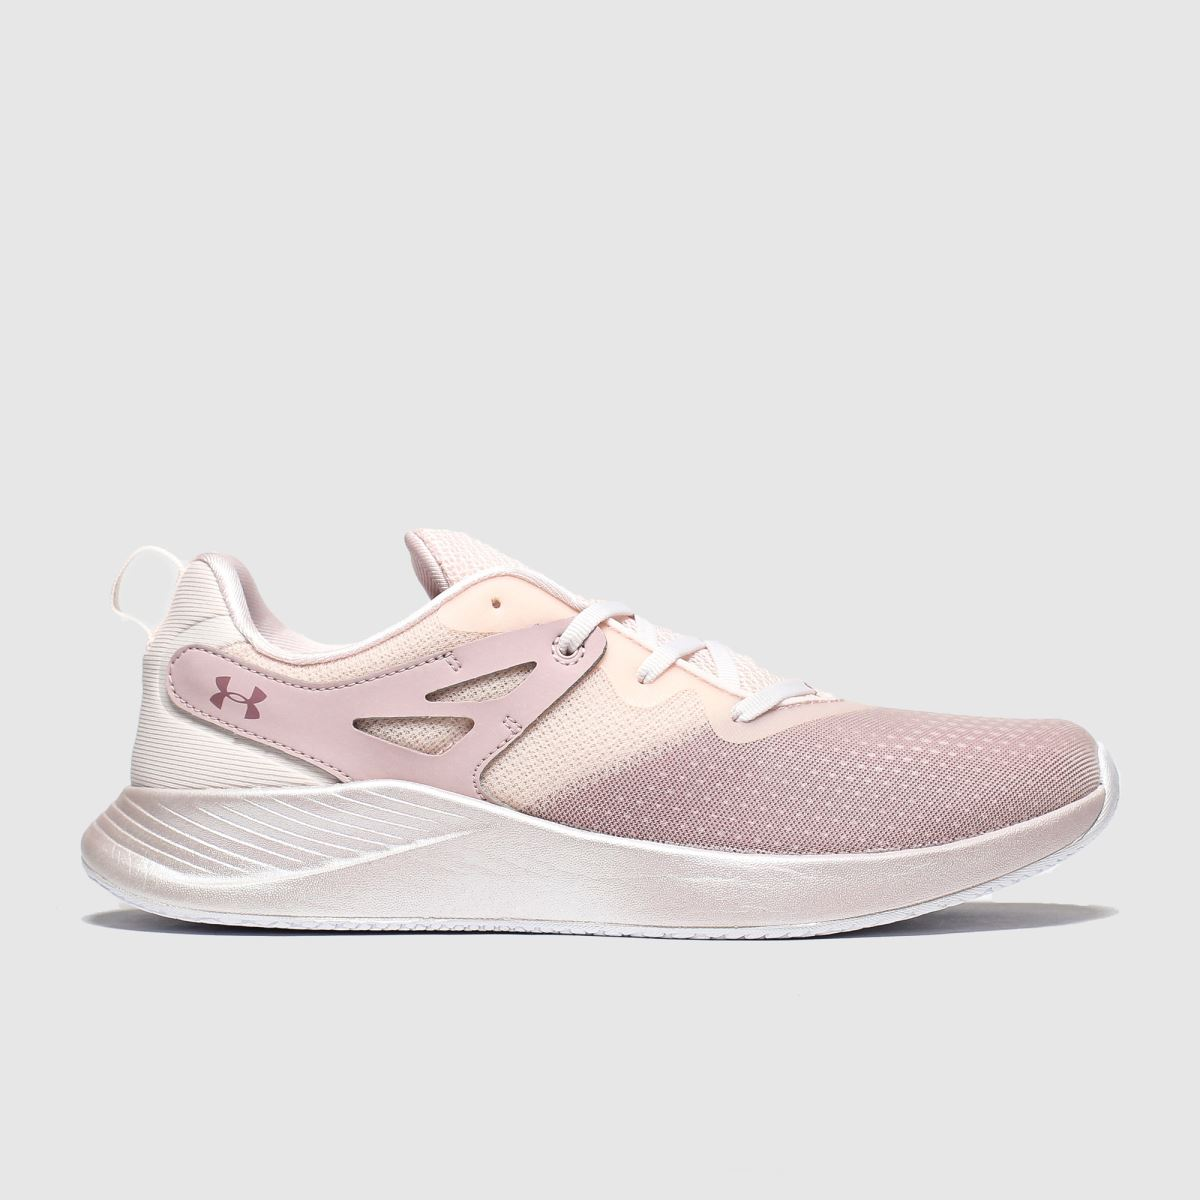 Under Armour Pale Pink Charged Breathe Trainers